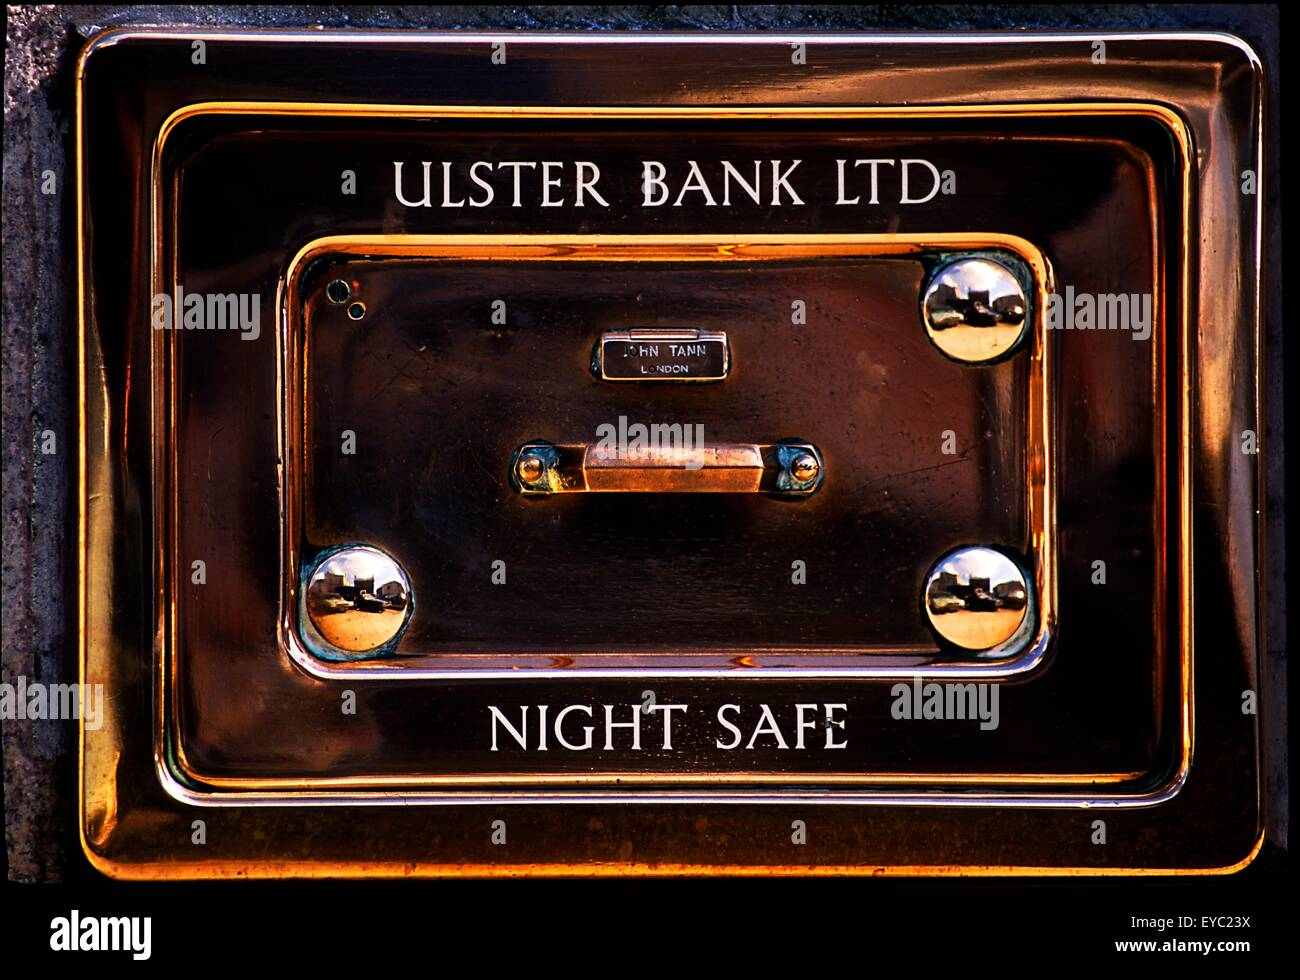 Ulster Bank Ltd; Night Safe - Stock Image